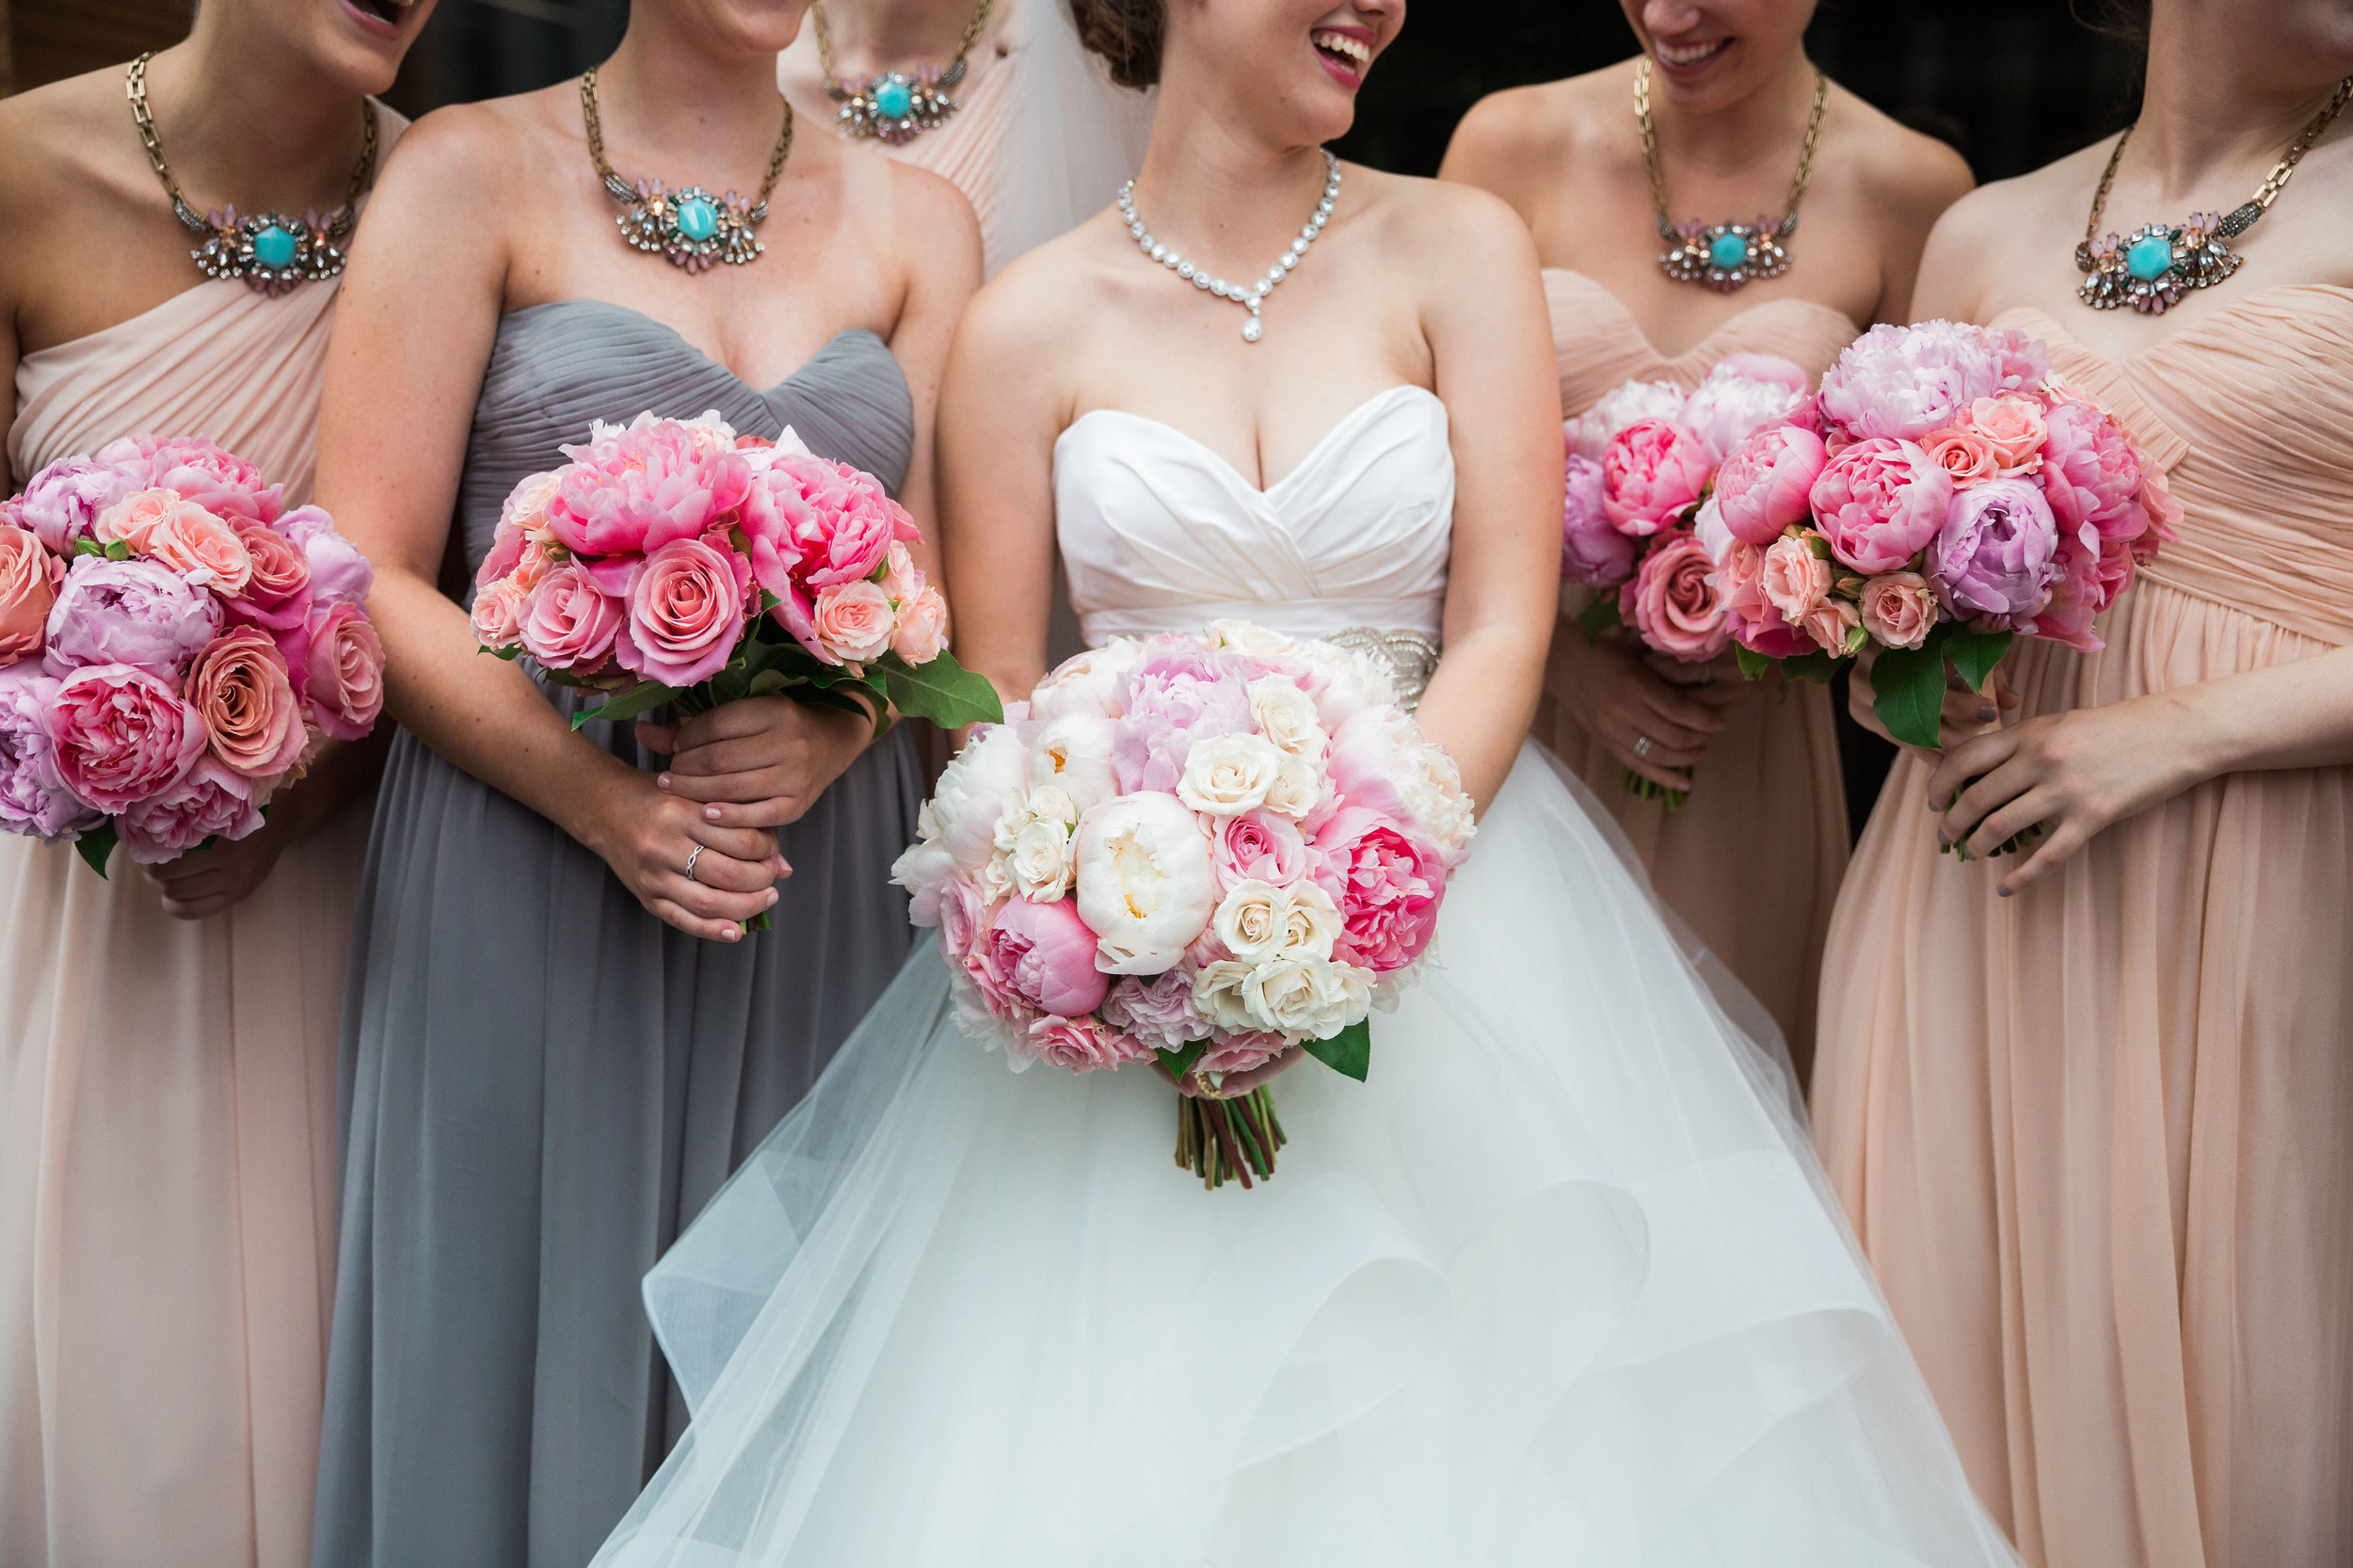 Bouquet shots from Bridal Party